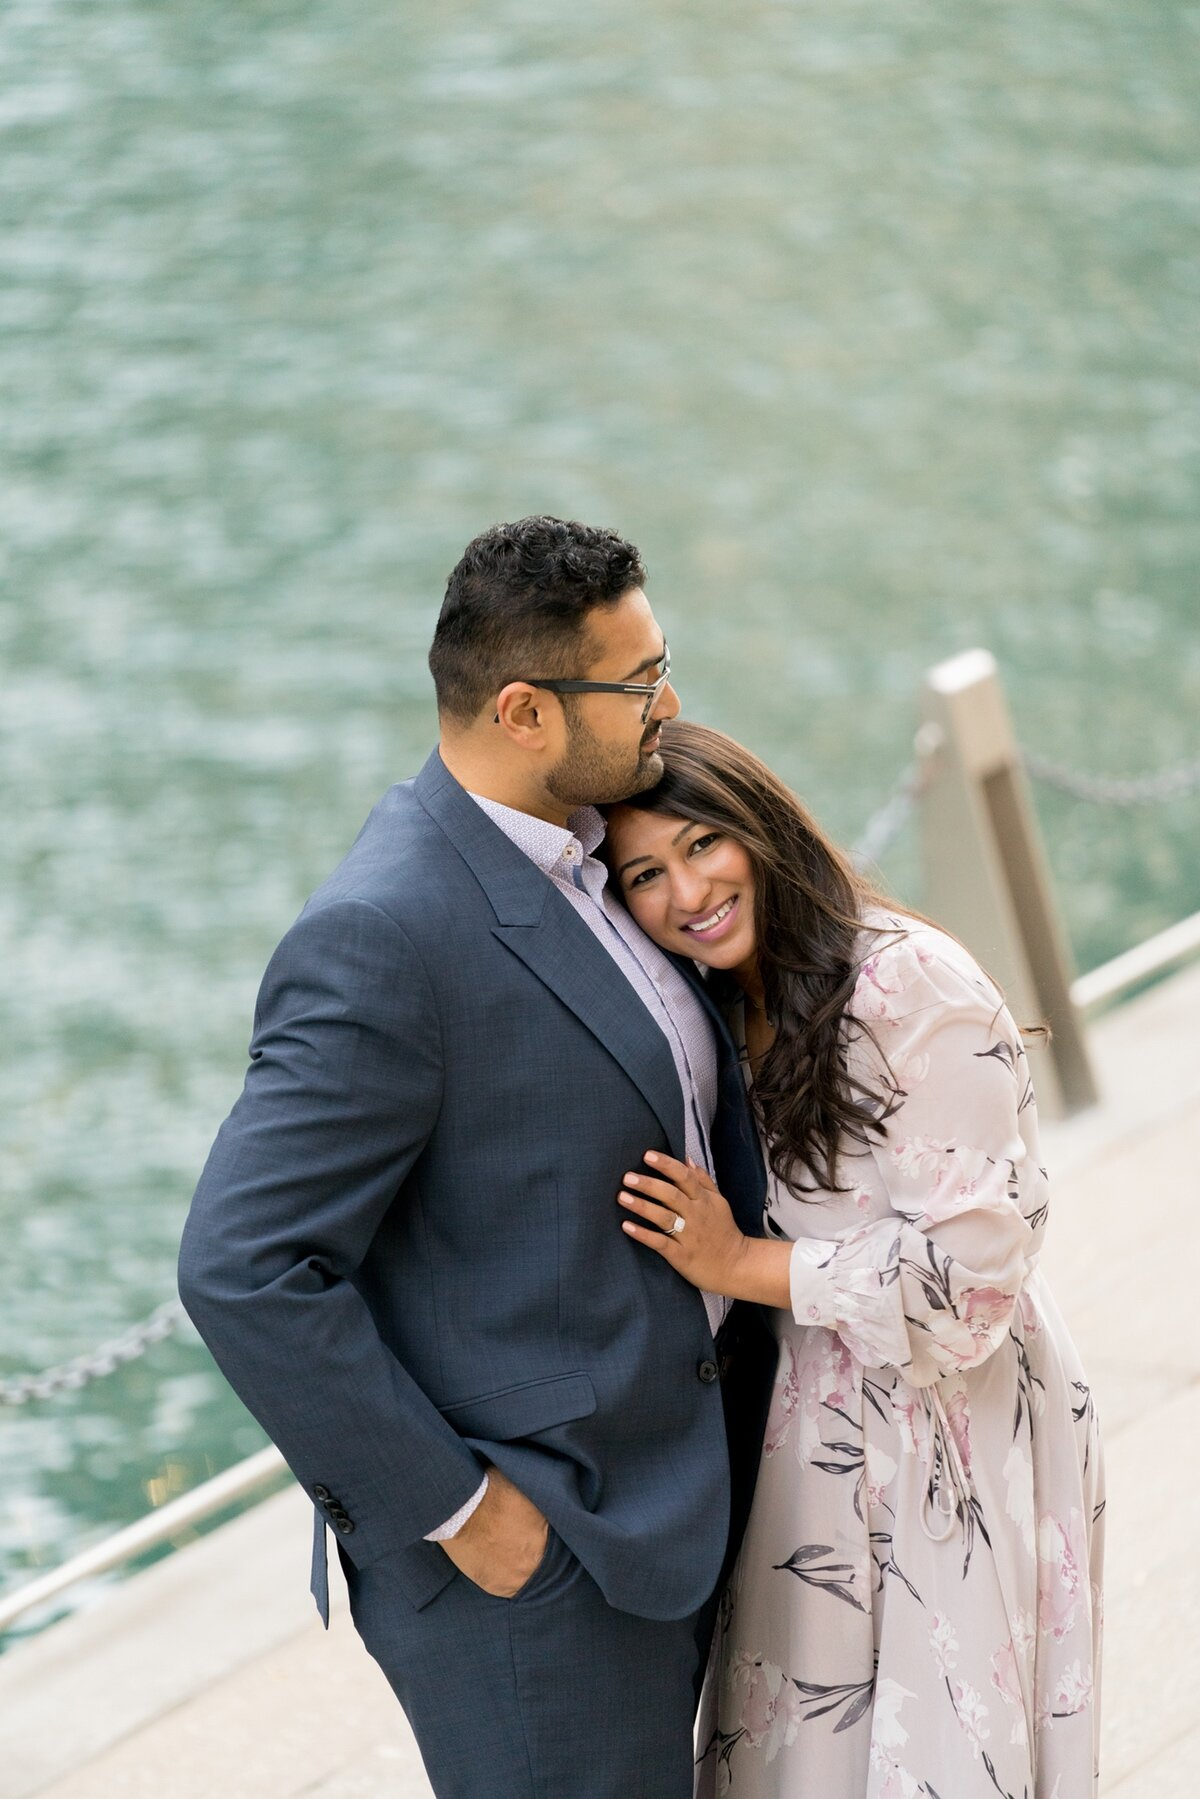 Le Cape Weddings - Chicago Engagement Session - Kinjal and Pratik -25.jpg